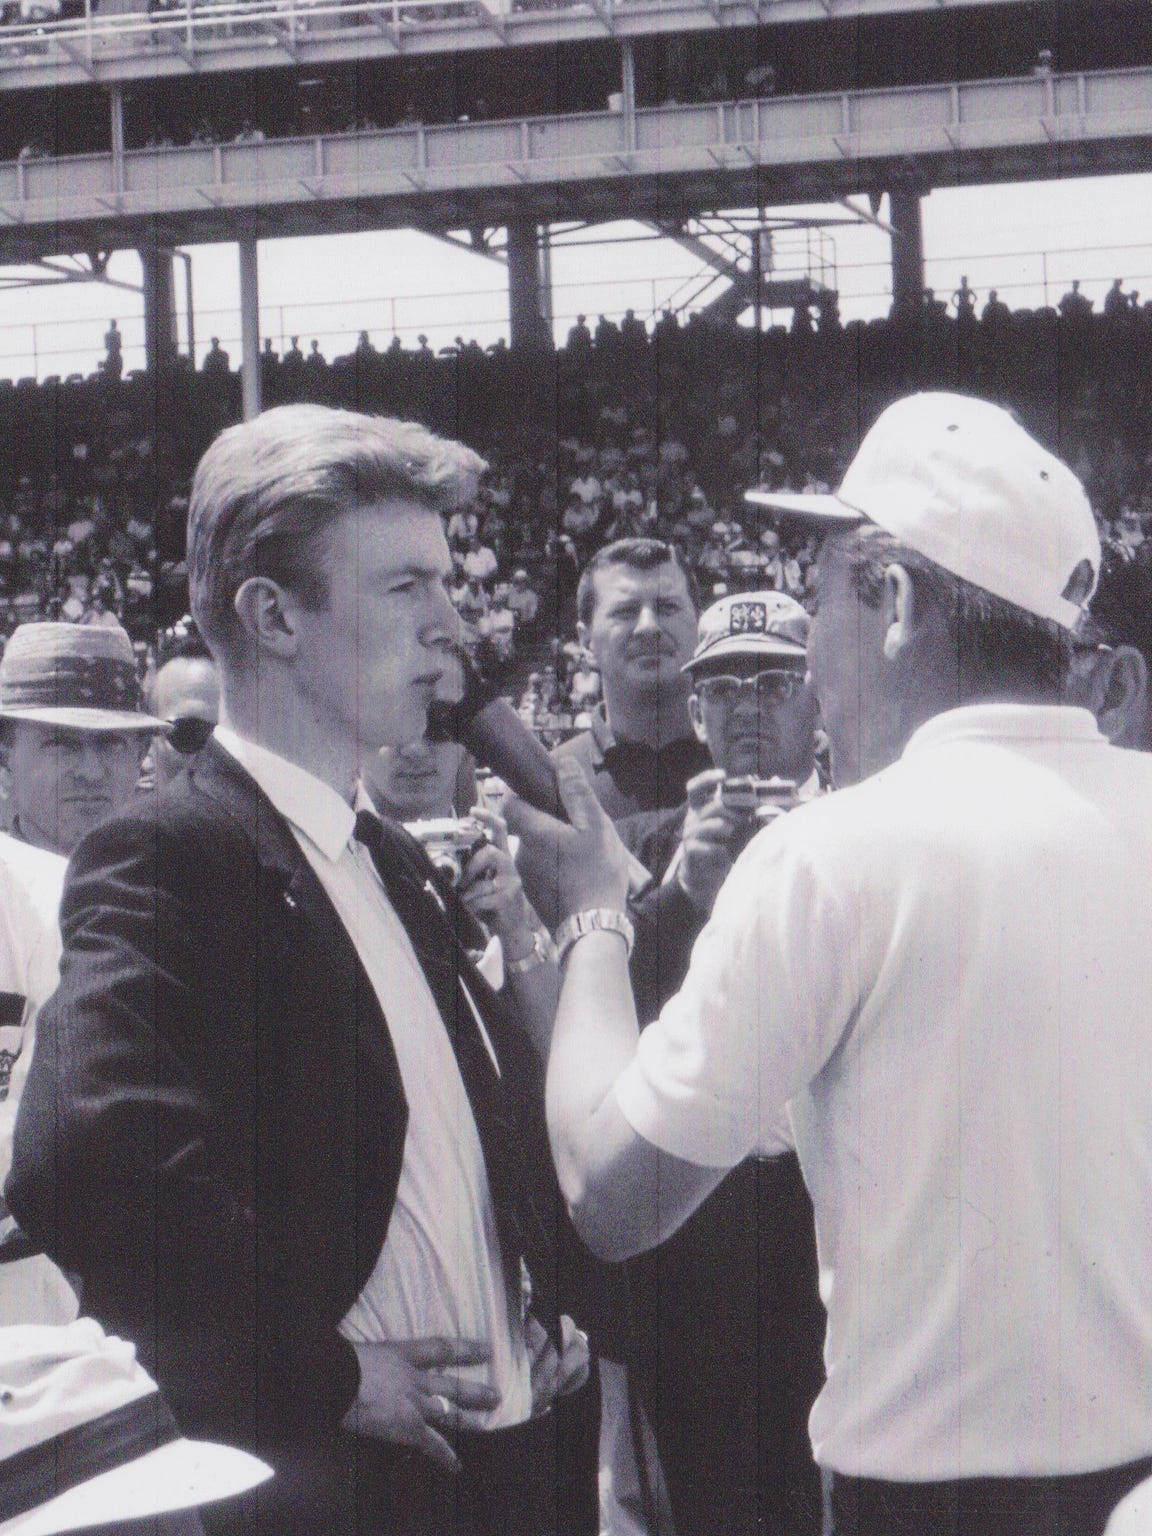 On just his third day at the track, 21-year-old Donald Davidson was interviewed by longtime IMS public address announcer Jim Phillippe.